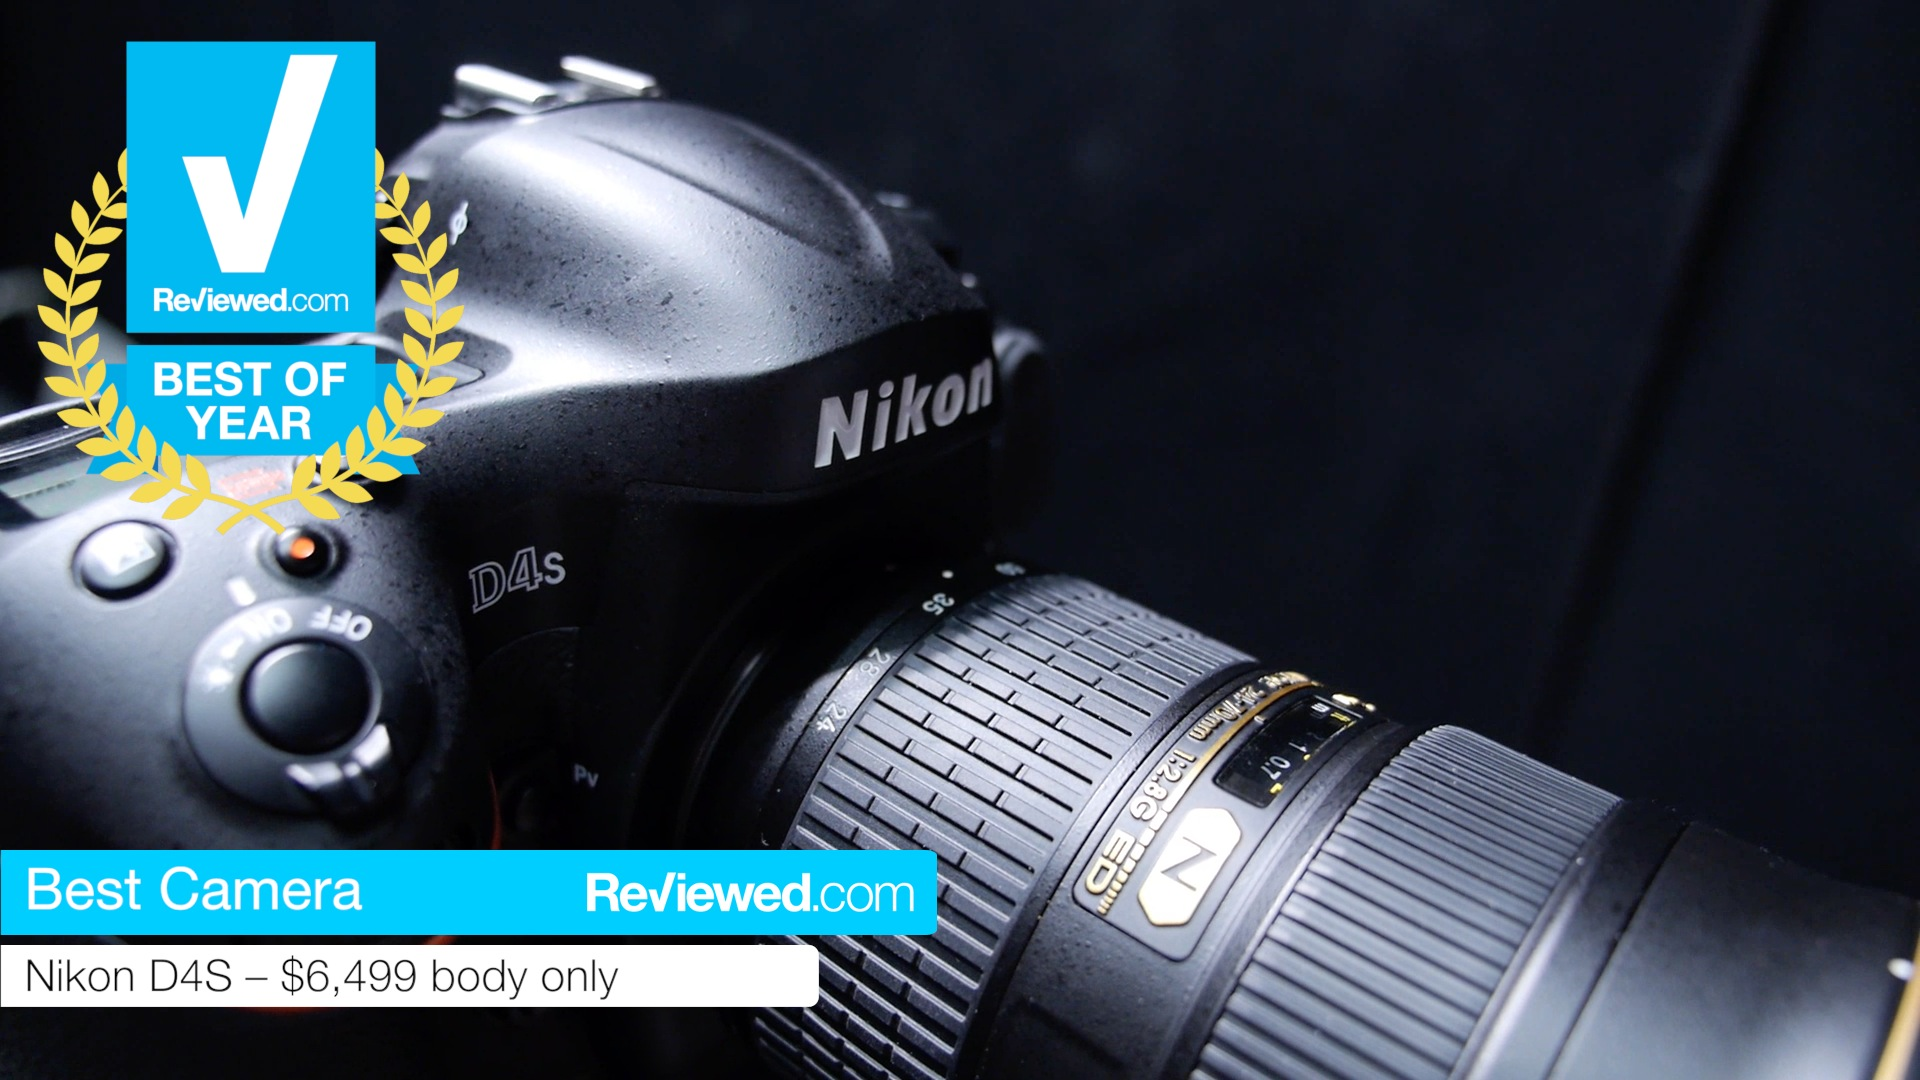 1242911077001 3877312742001 the best cameras of 2014